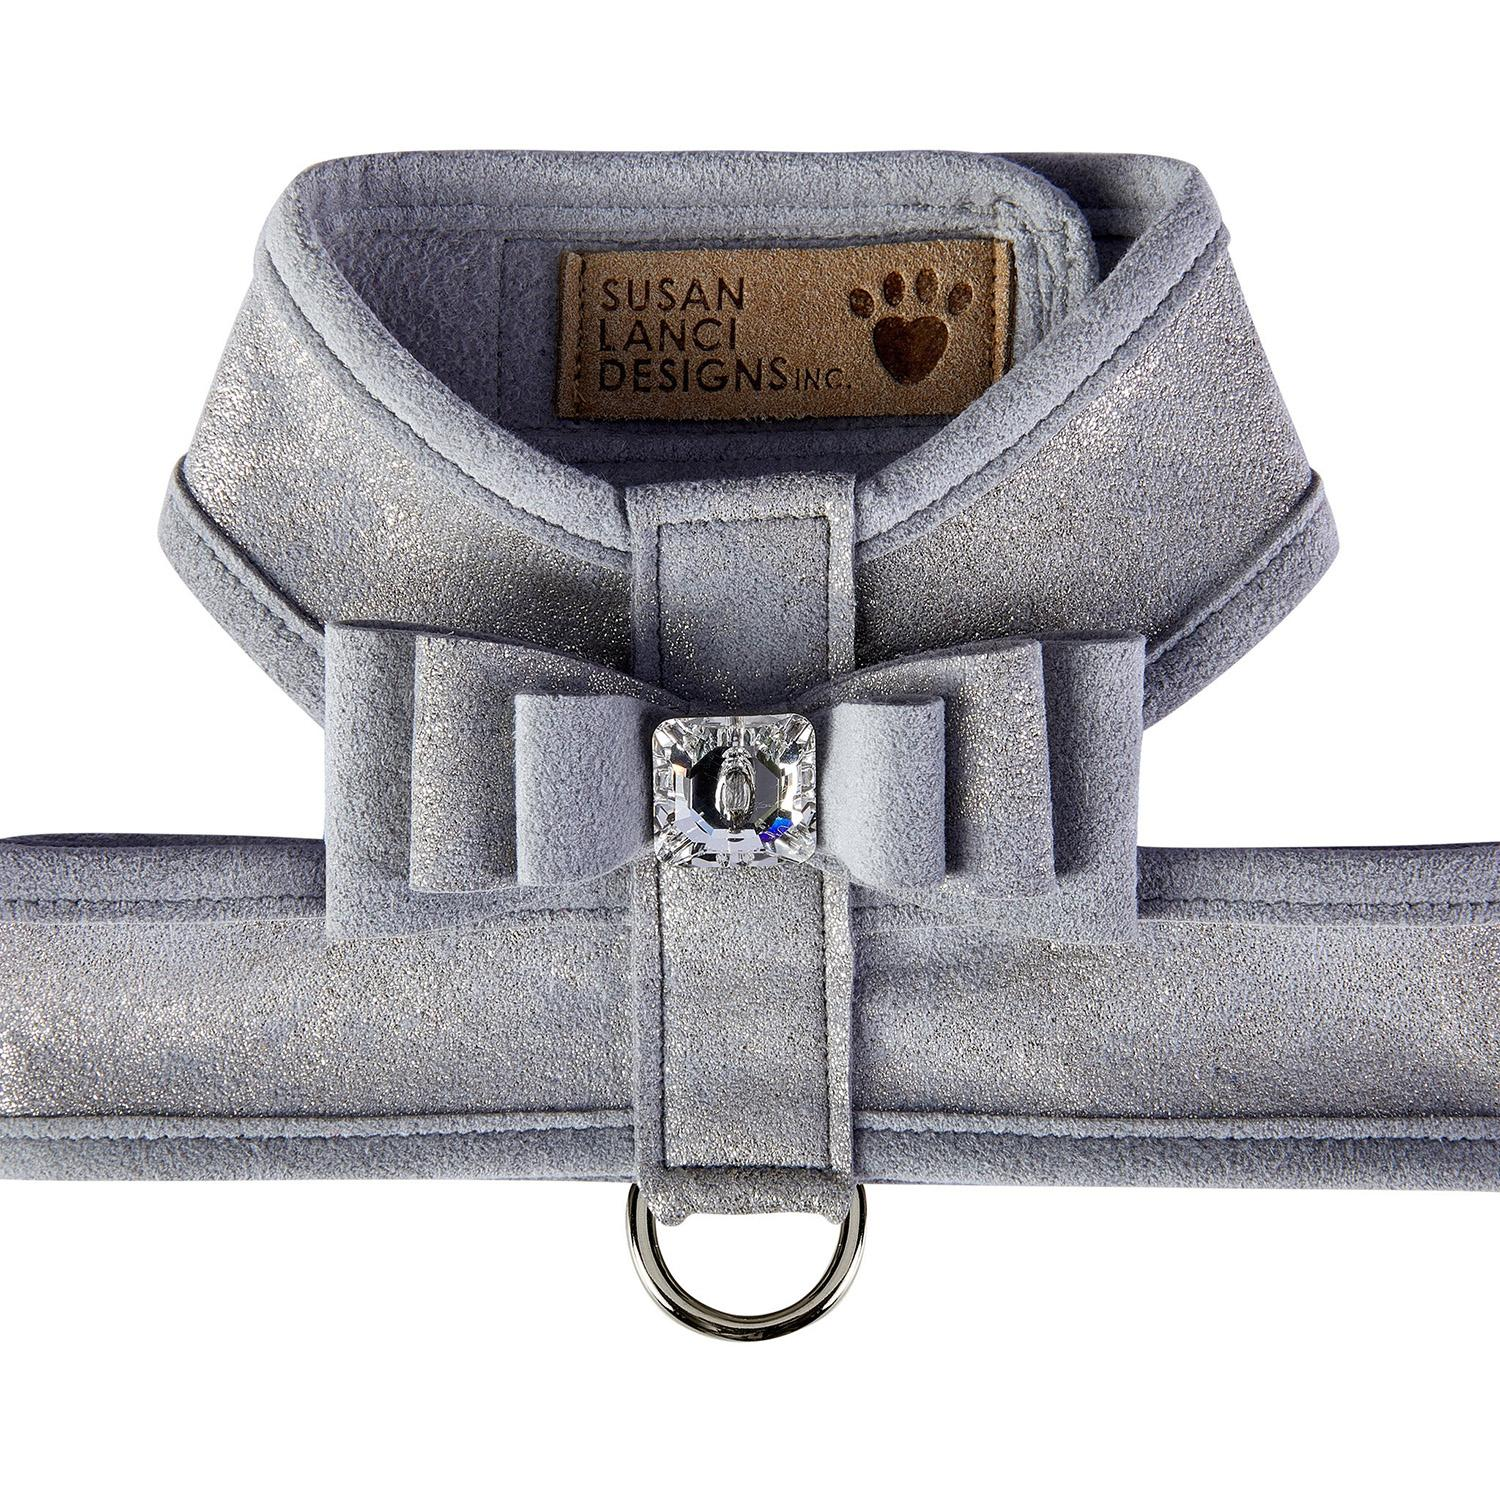 Platinum Glitzerati Tinkie Dog Harness with Really Big Bow and Platinum Trim by Susan Lanci